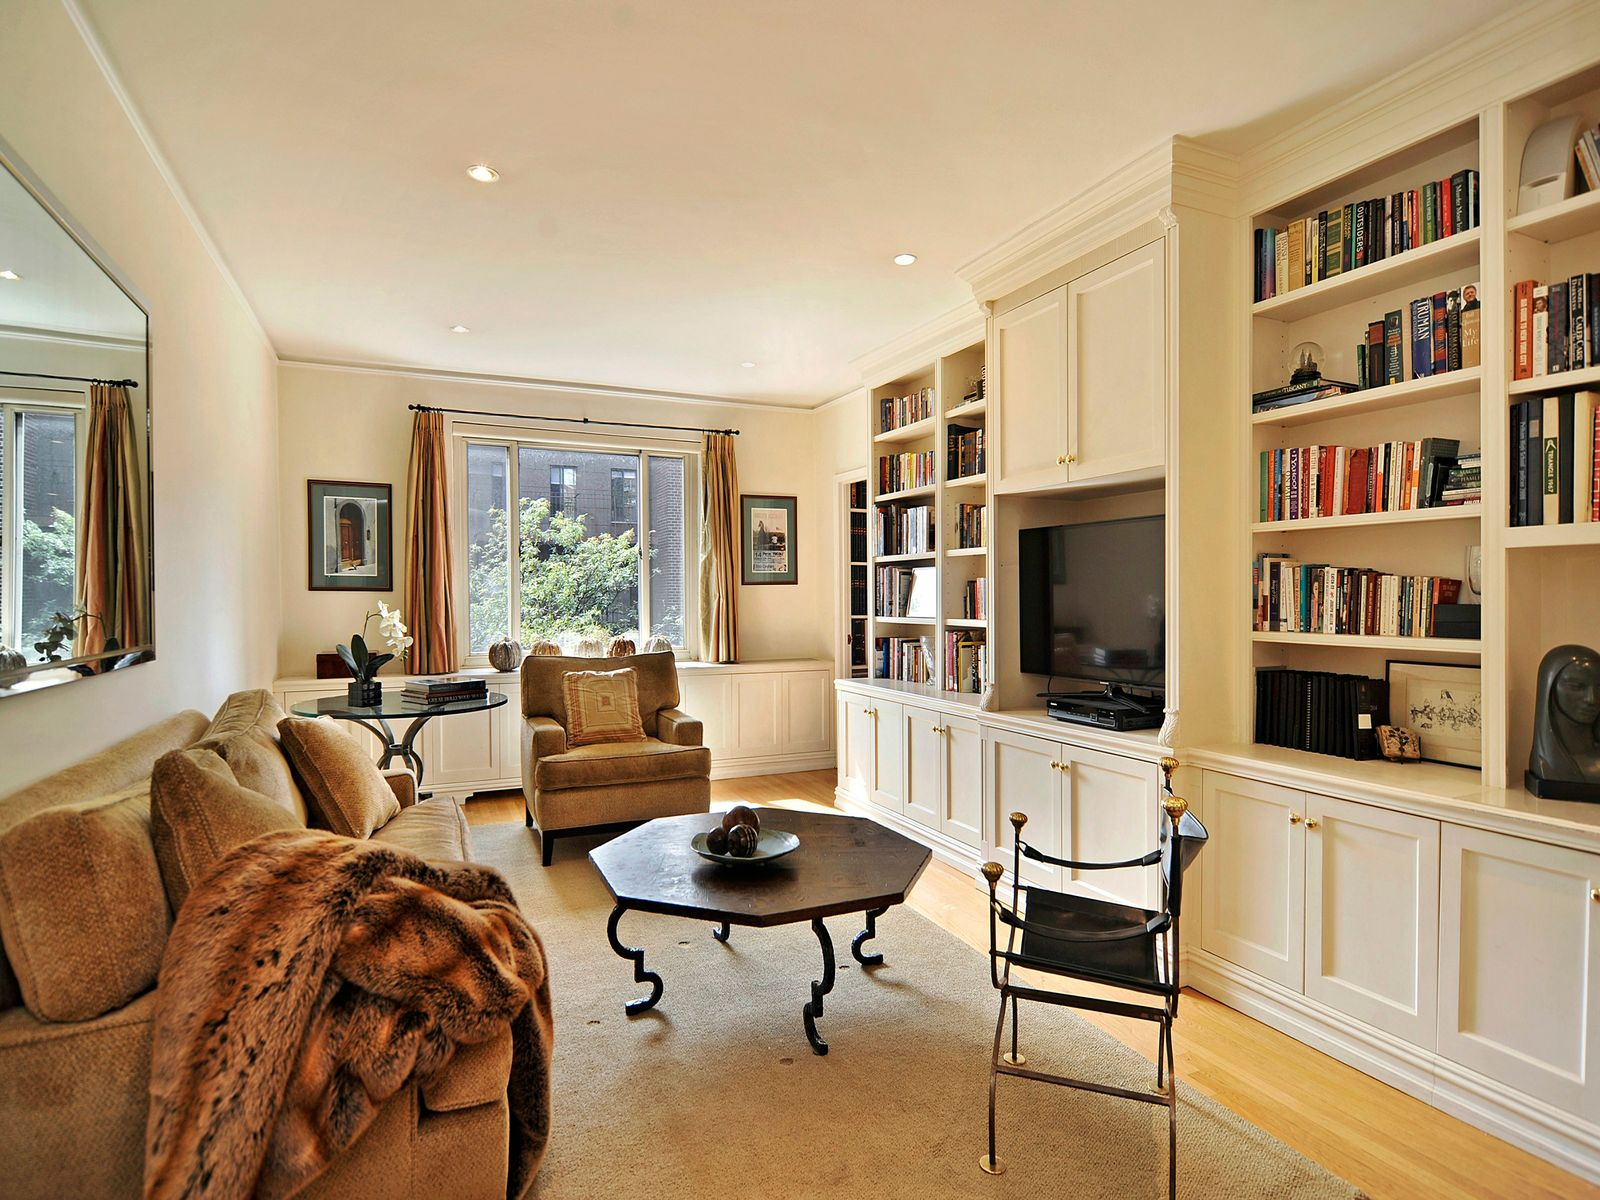 Sunshine Serenity in Gracie Gardens, New York NY Cooperative - New York City Real Estate